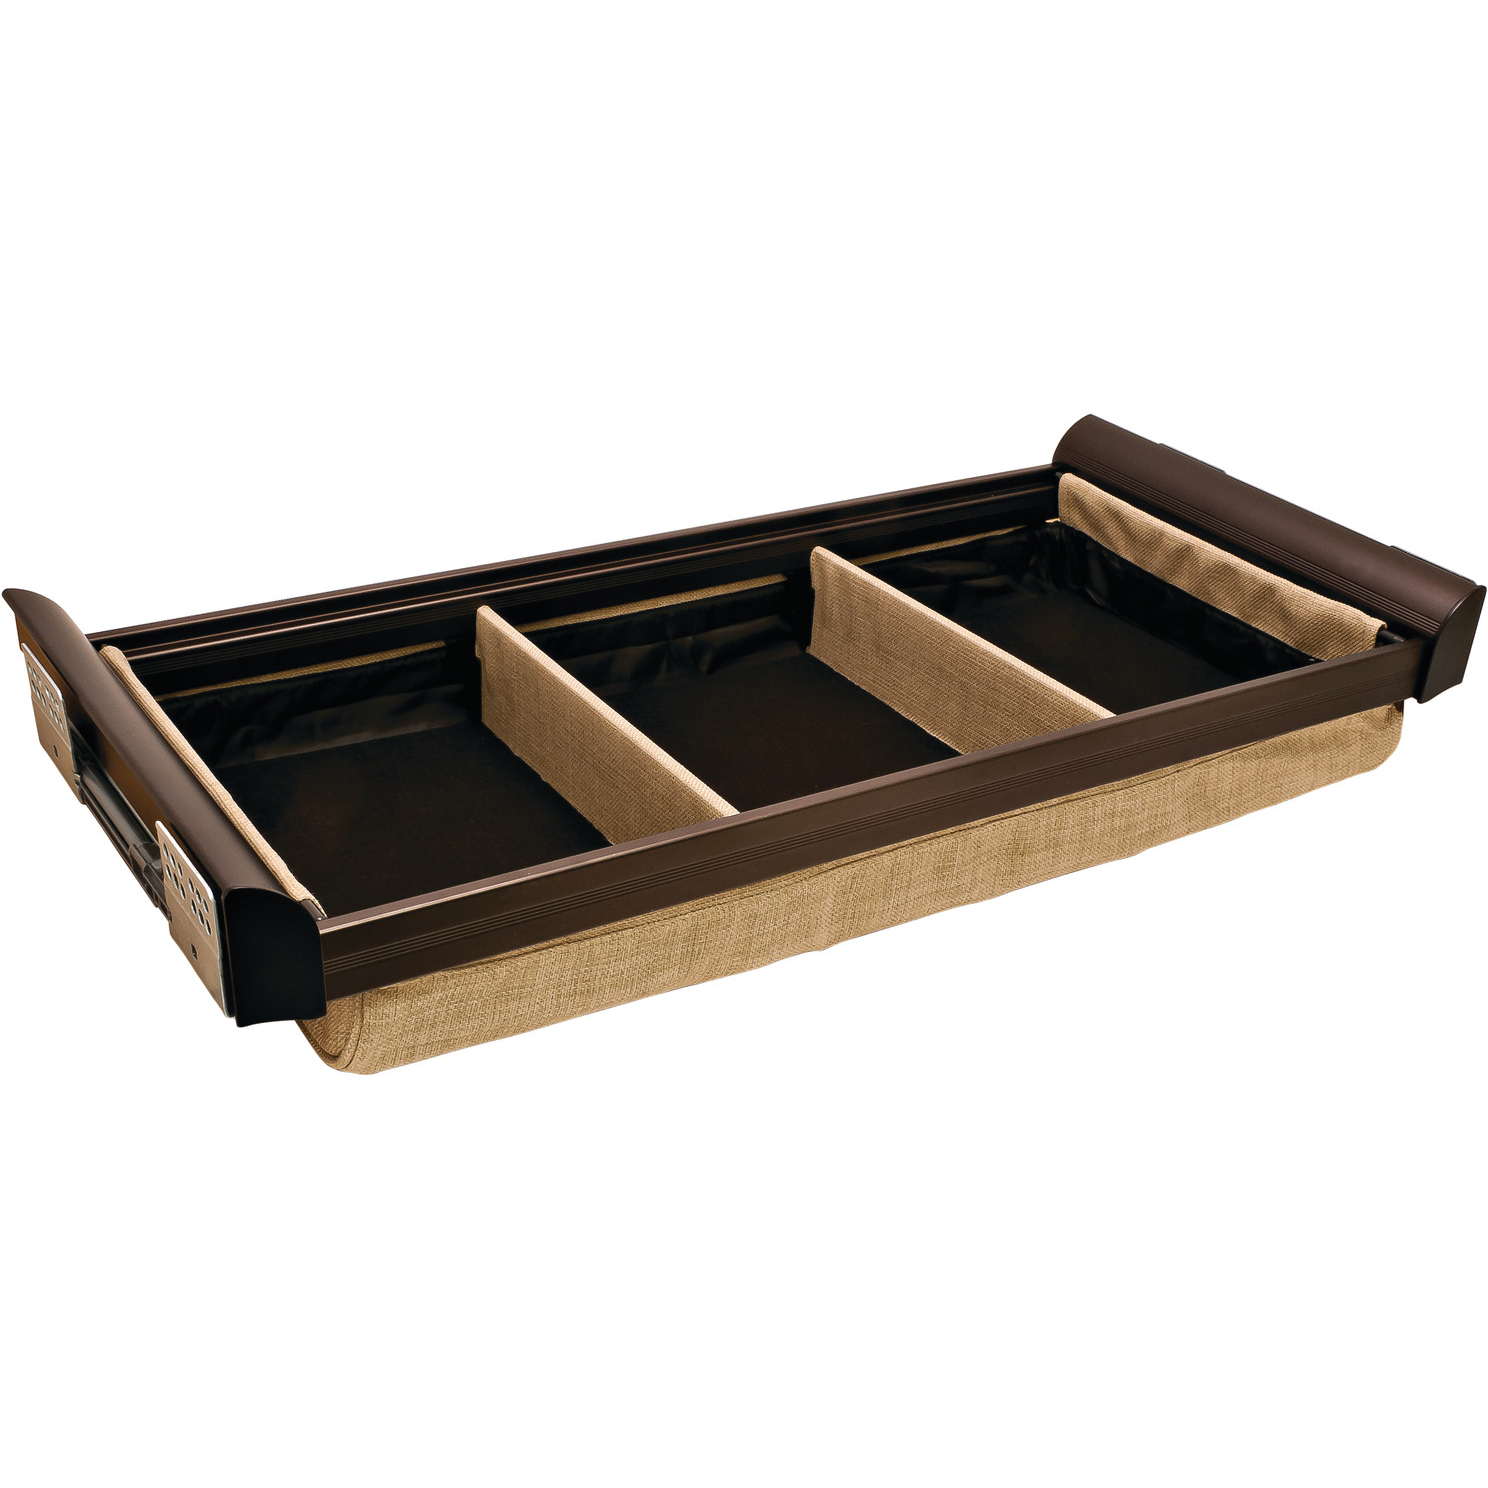 Engage Lingerie Bronze Drawers 18 Inches with 2 Dividers